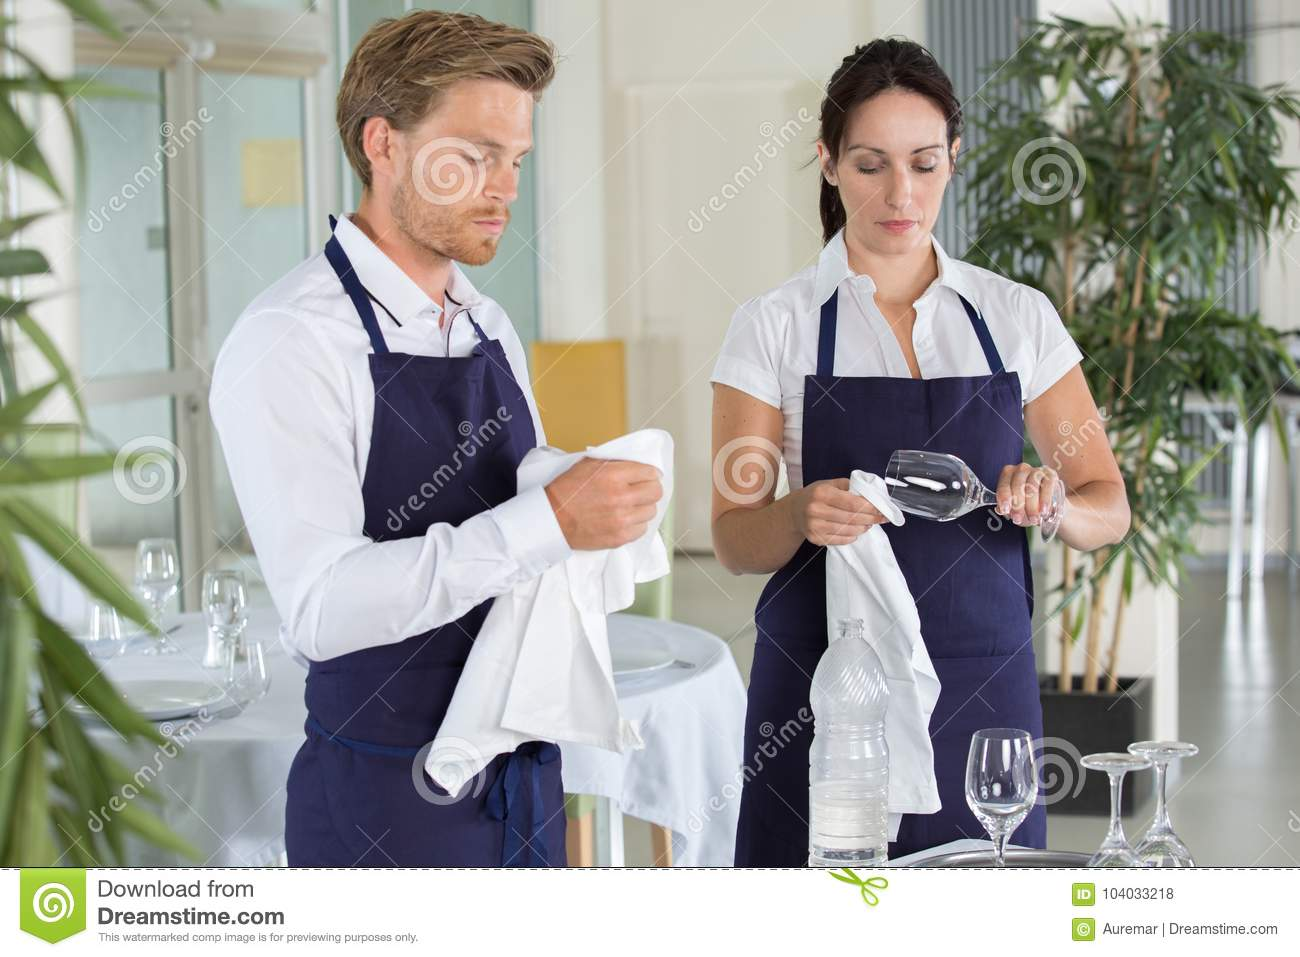 Waitress and waiter cleaning glasses in restaurant